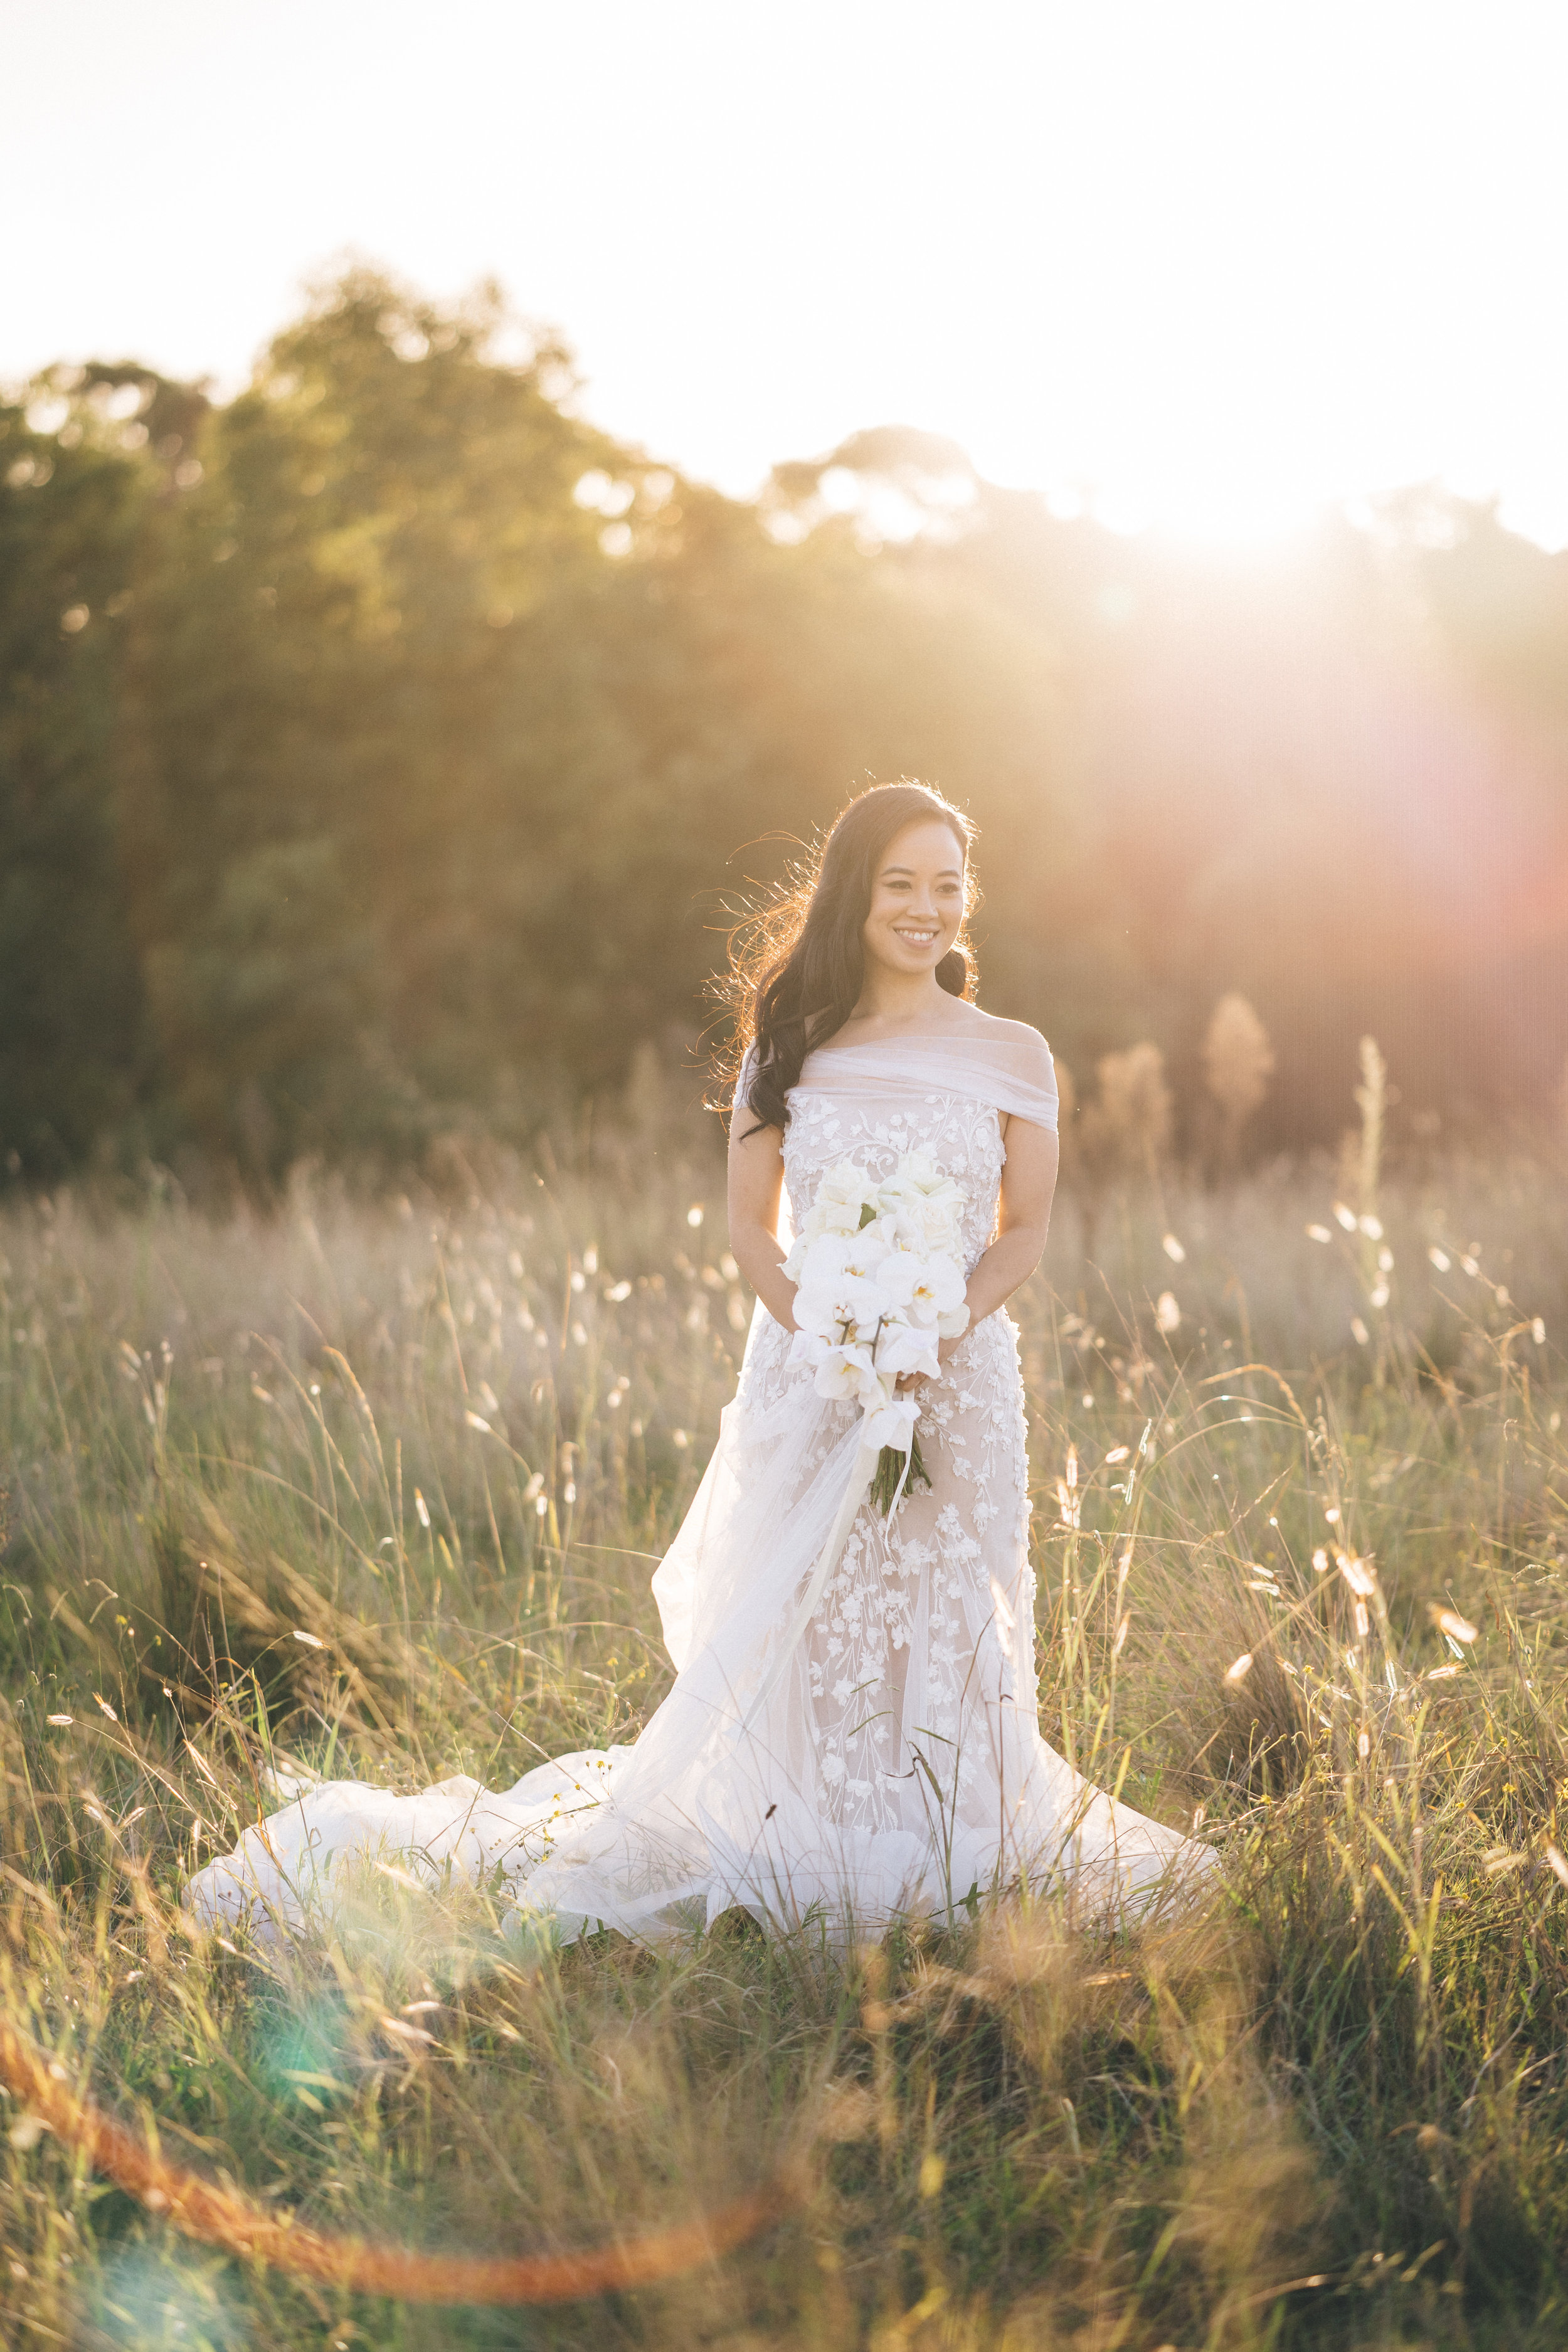 Ann Marie Yuen Photography - PREVIEW ONLY - 0003.jpg